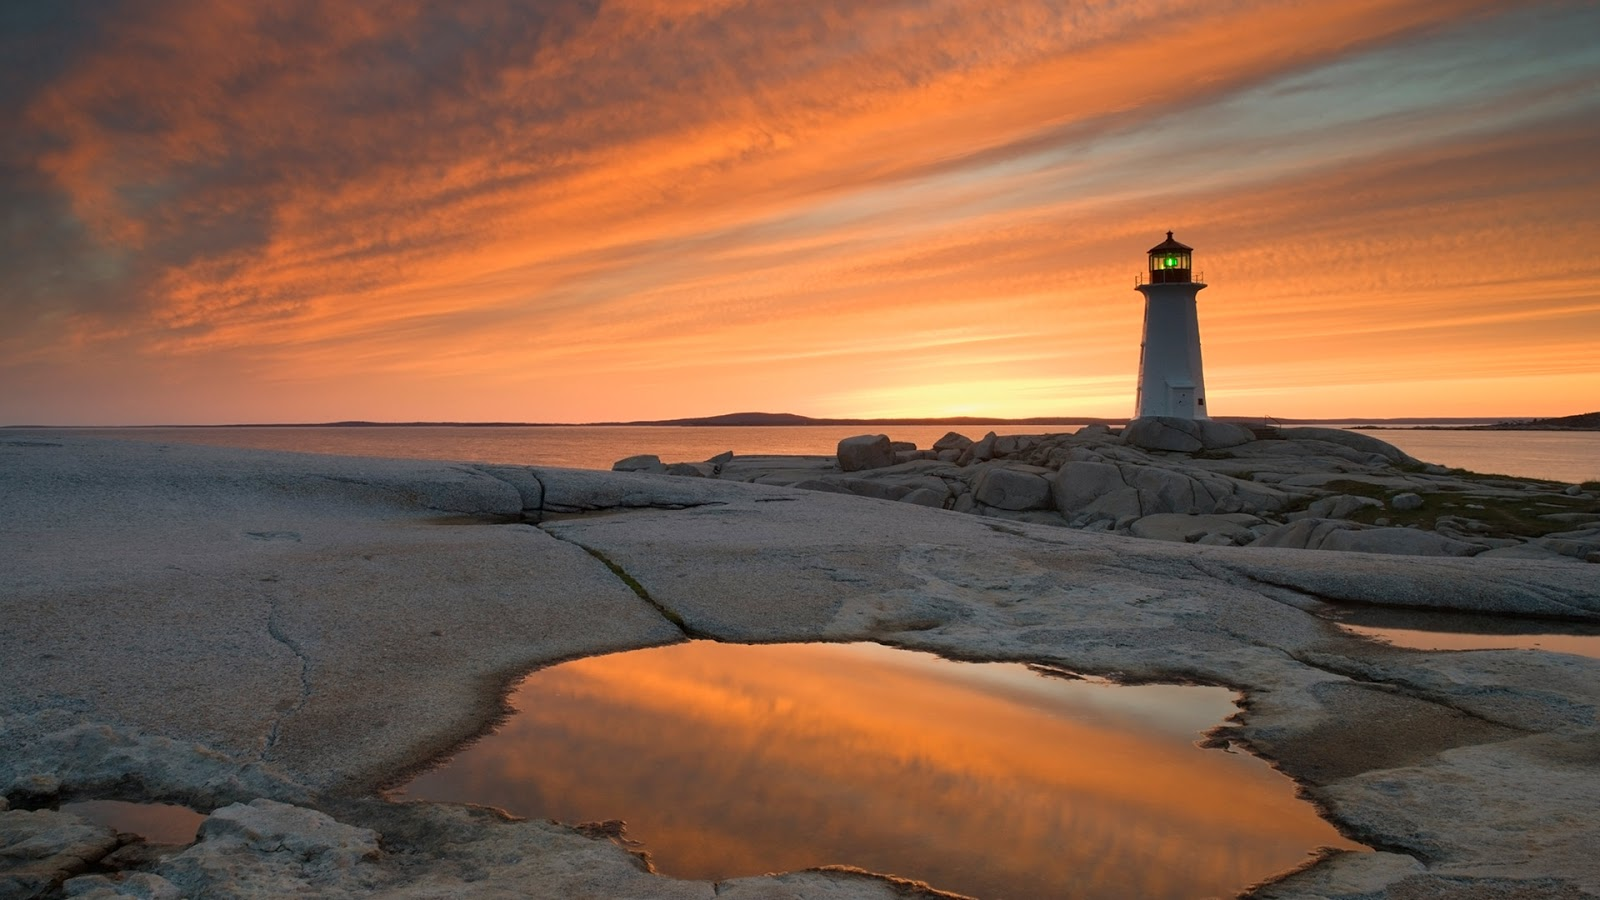 Peggy's Cove Lighthouse at dusk, Nova Scotia, Canada © Darwin Wiggett/Offset